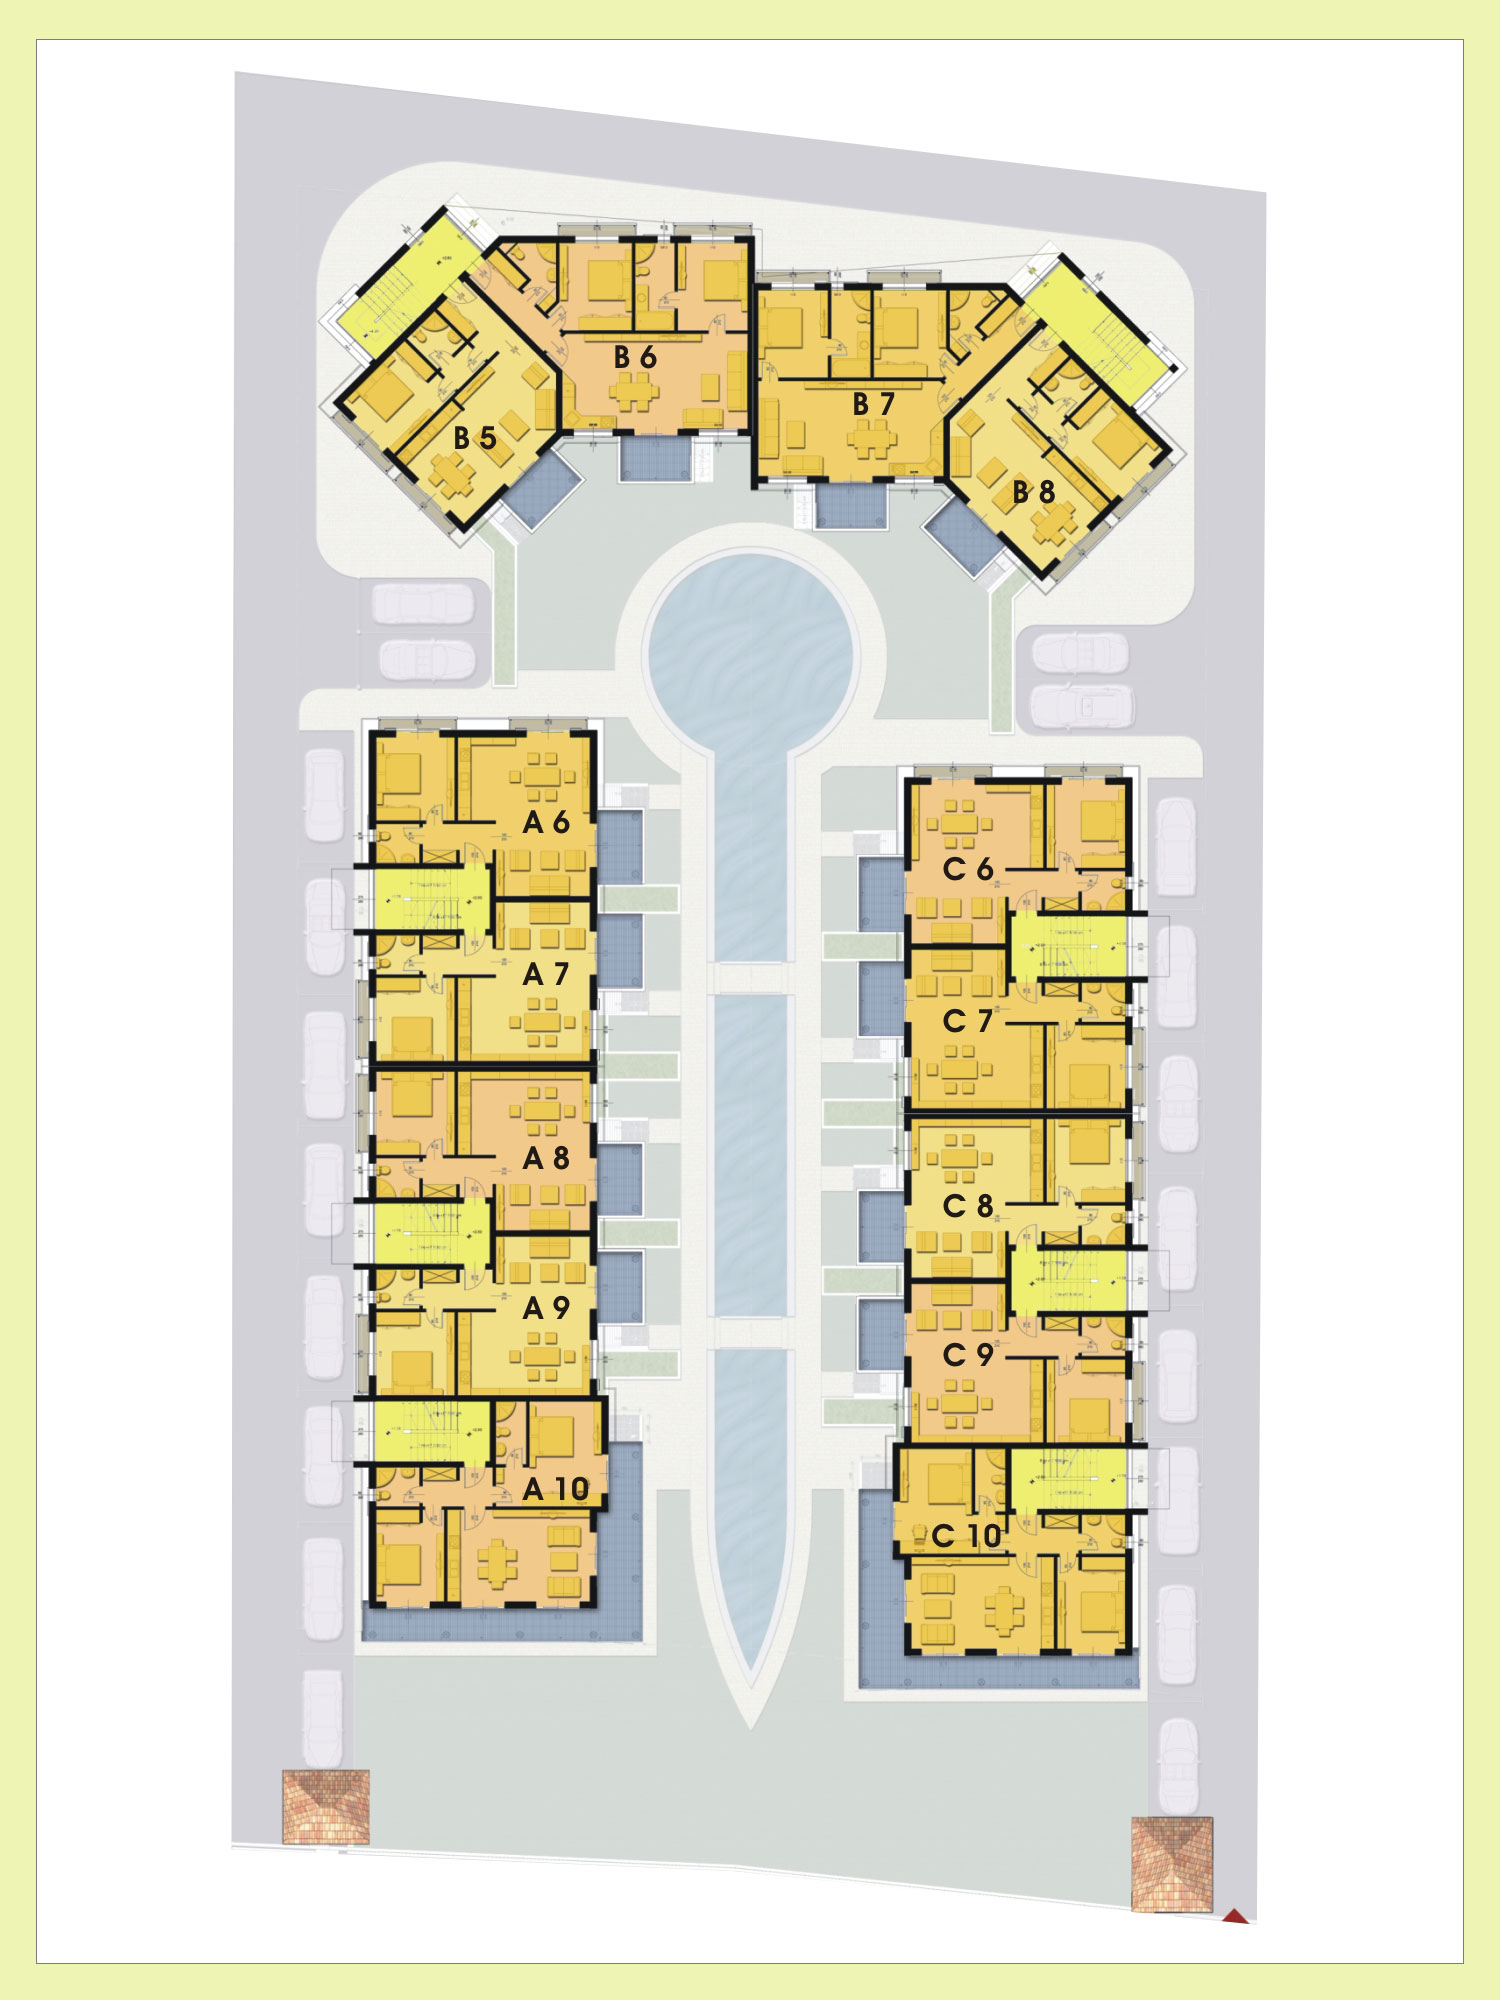 apartment complex floor plans submited images 24 amazing small apartment complex plans house plans 75605